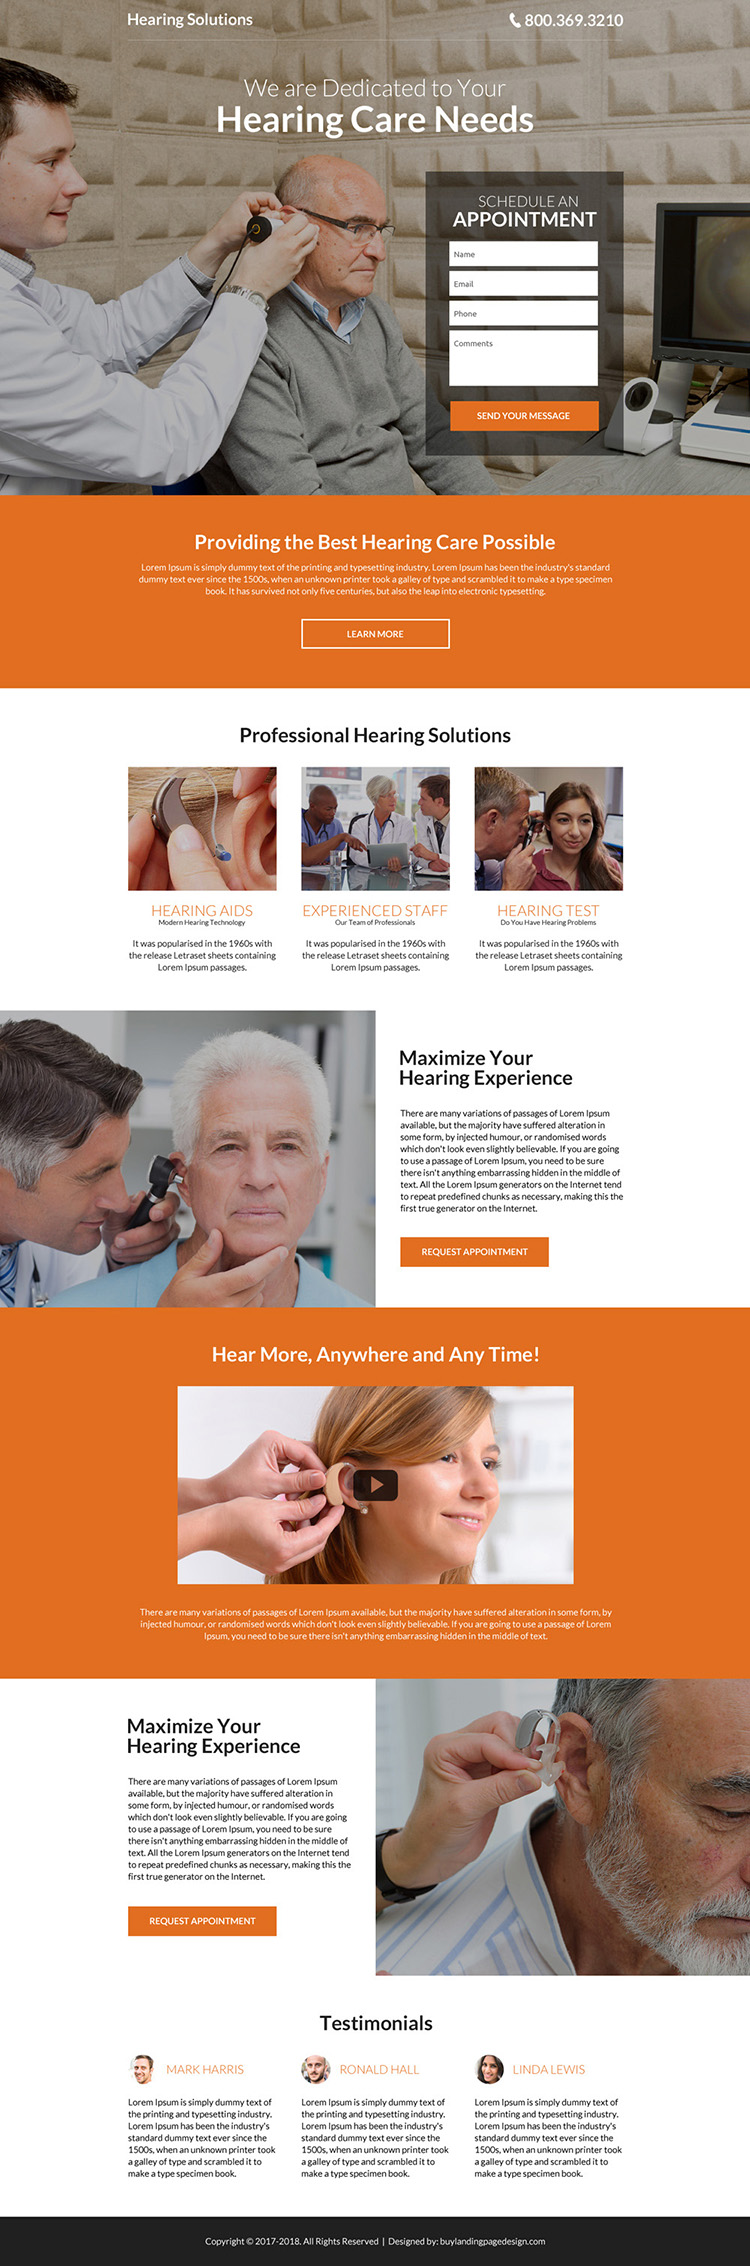 hearing solutions modern landing page design